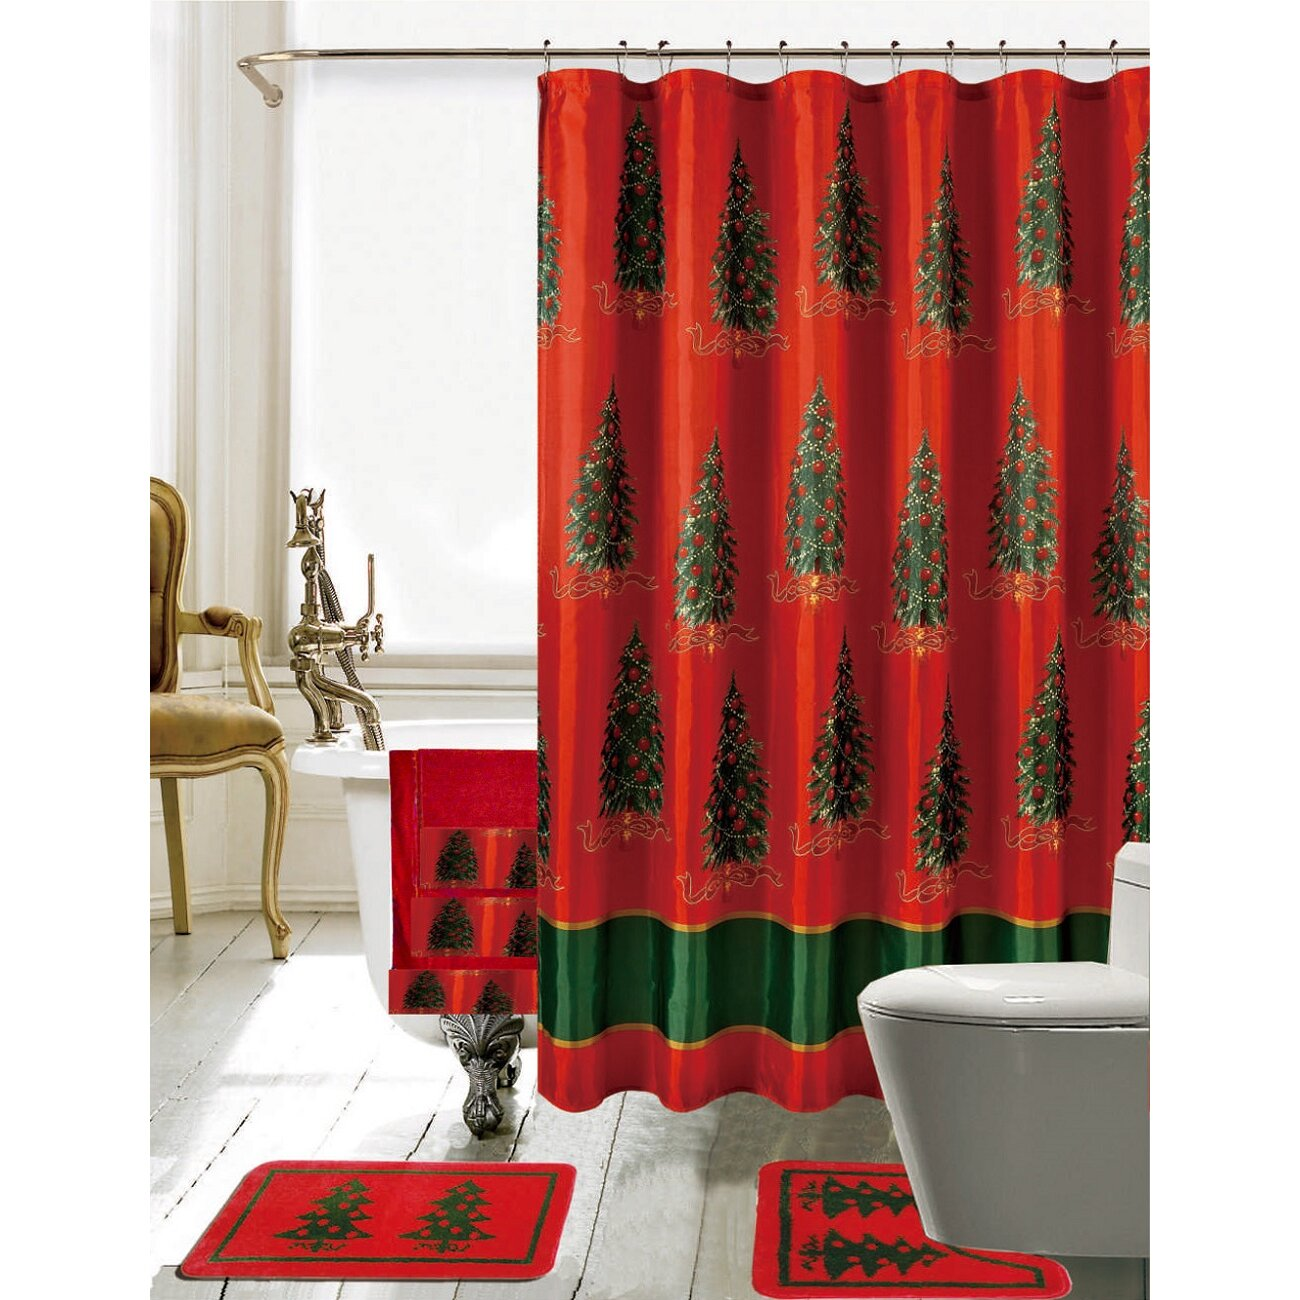 Christmas Shower Curtain Set Canada Curtain Menzilperde Net